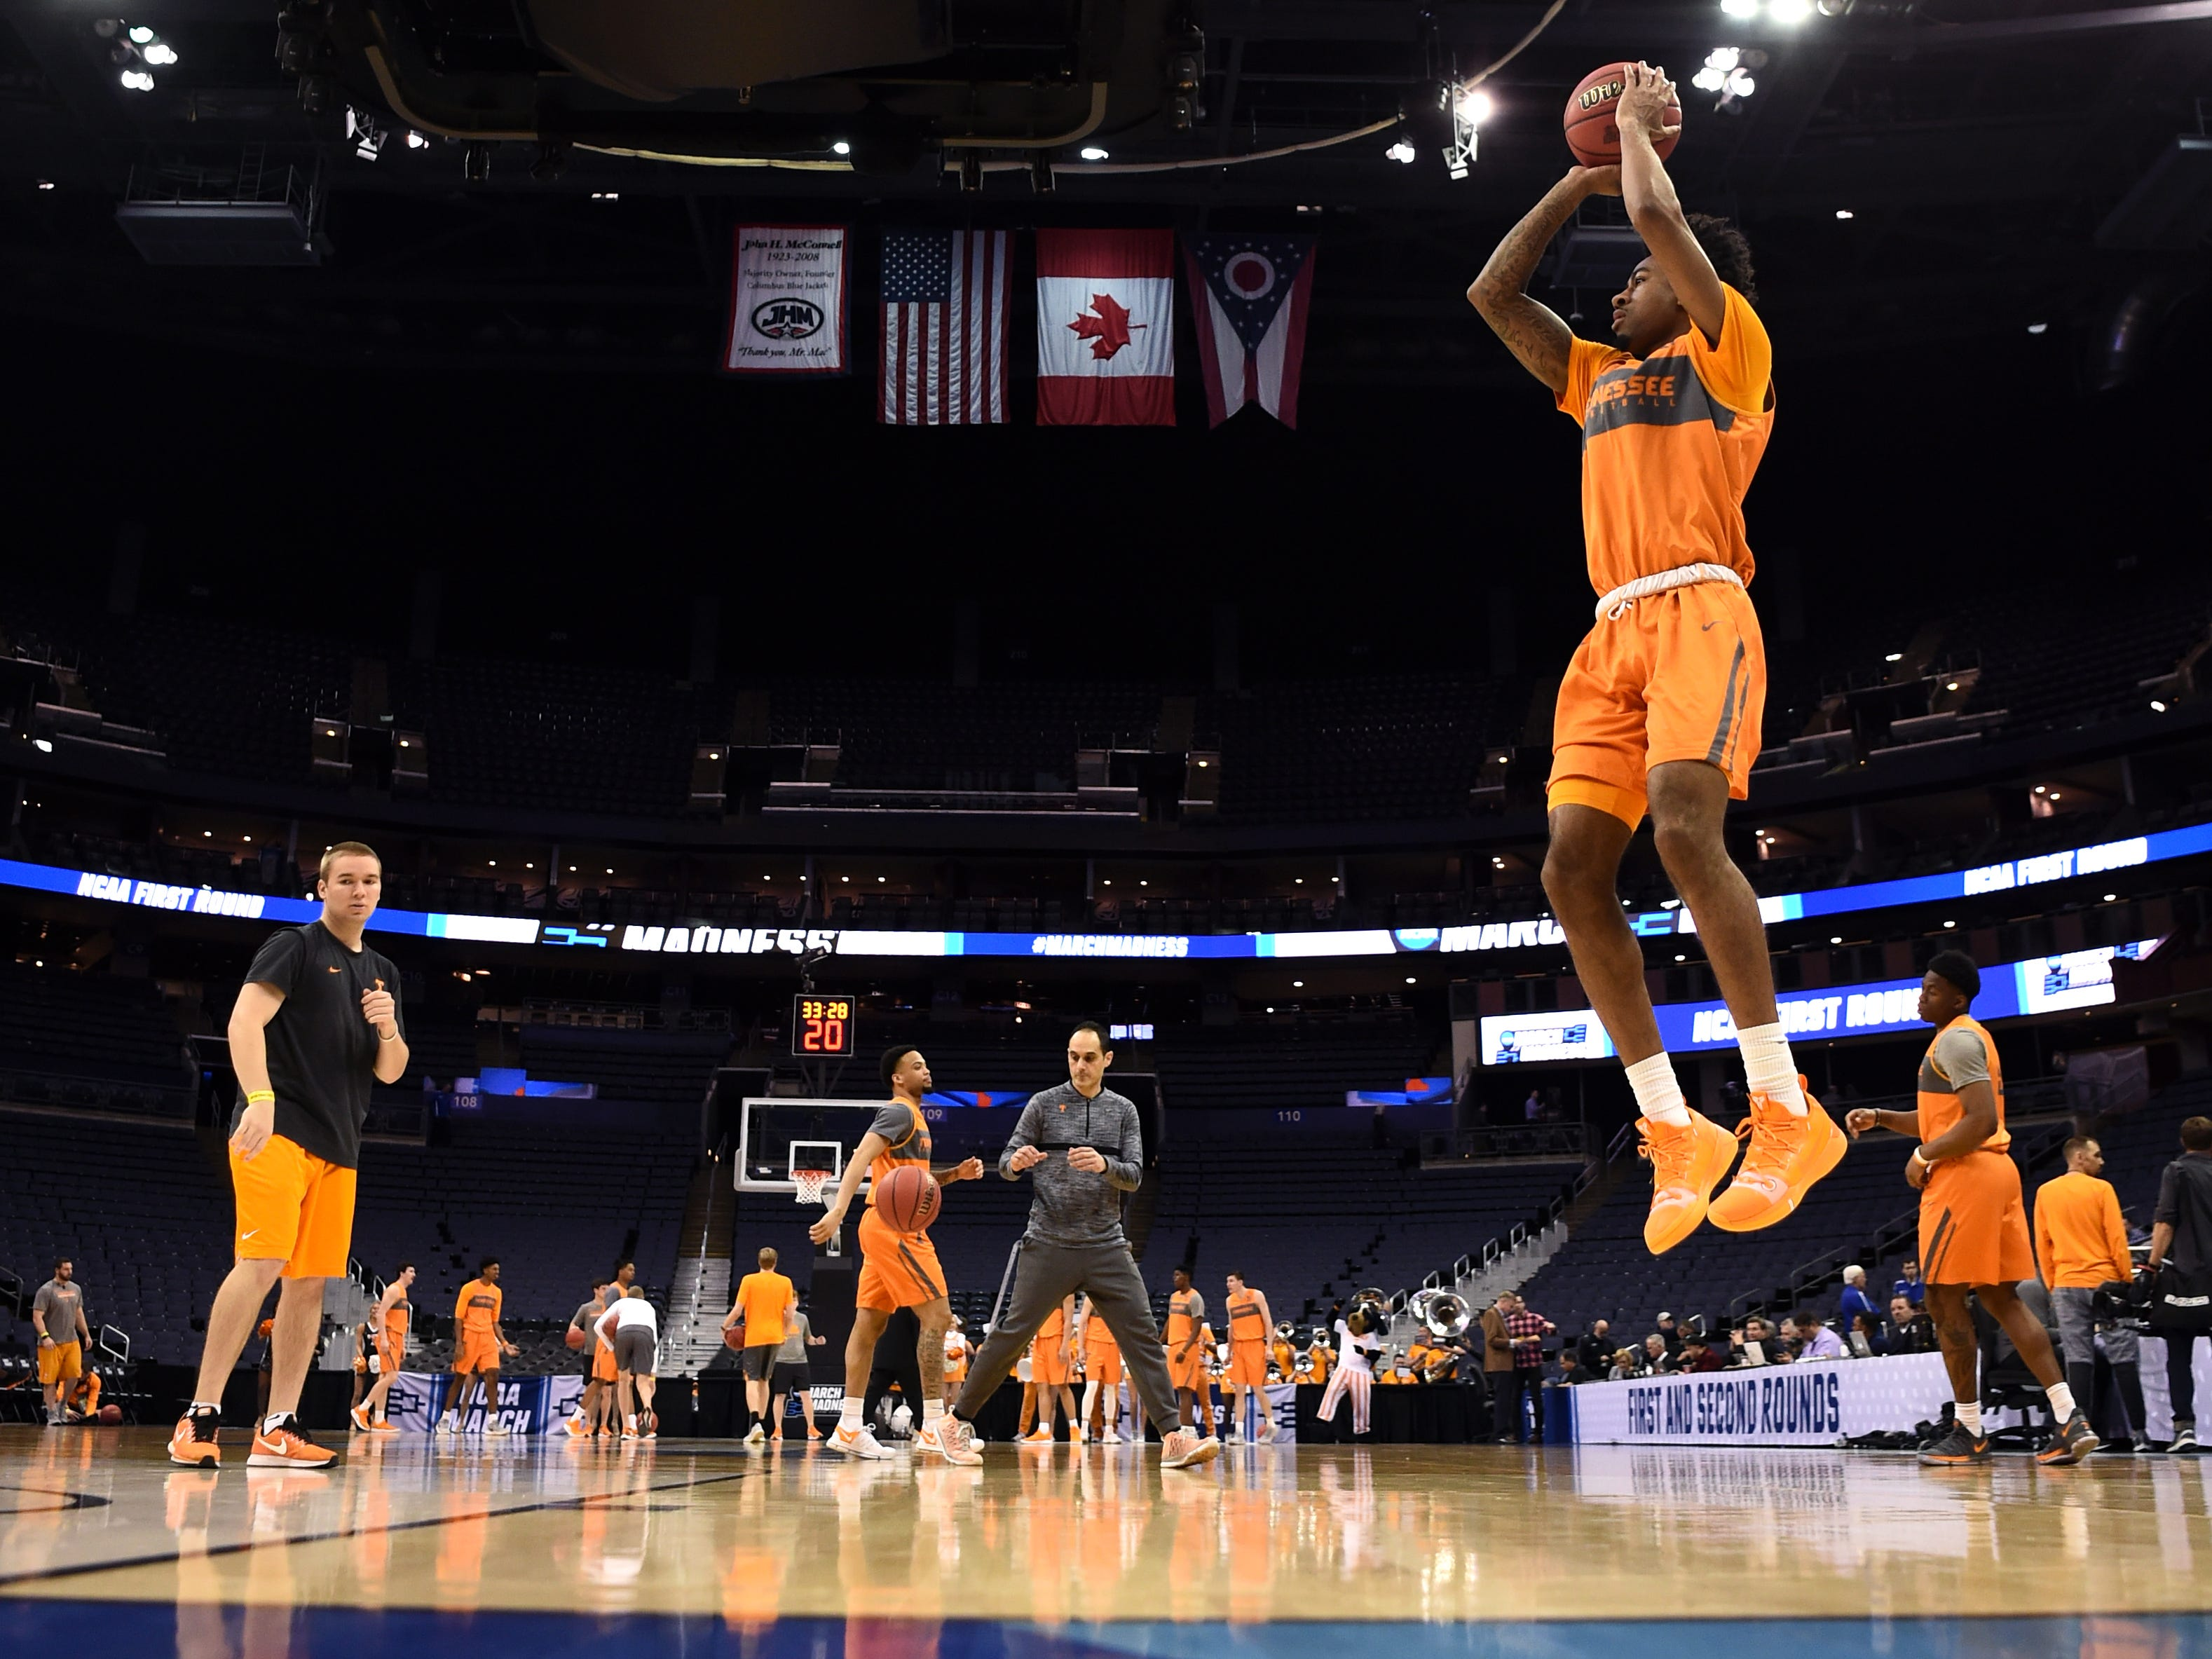 Tennessee guard Jordan Bowden (23) takes a shot during Tennessee's practice on Thursday, March 21, 2019, before their first round NCAA Tournament game against Colgate at Nationwide Arena in Columbus, Ohio.